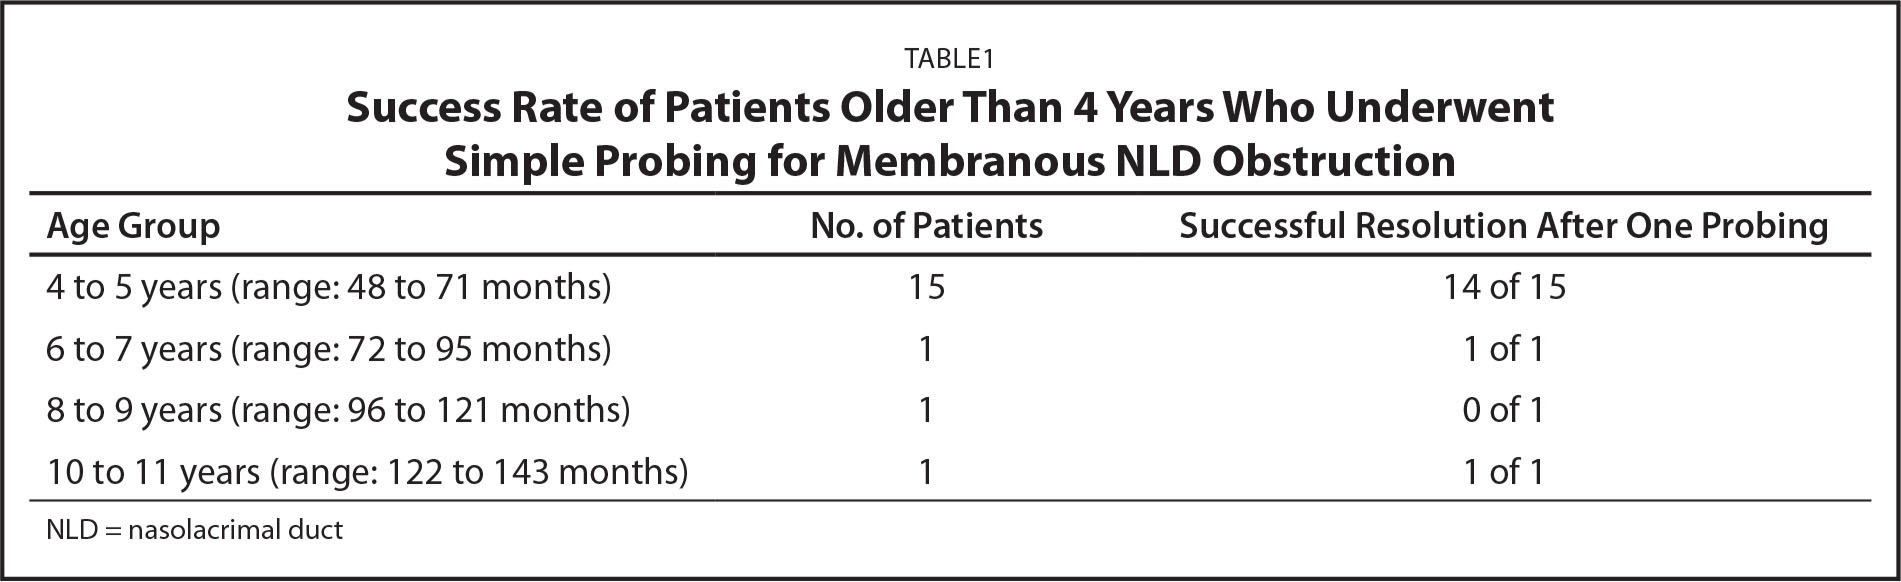 Success Rate of Patients Older Than 4 Years Who Underwent Simple Probing for Membranous NLD Obstruction